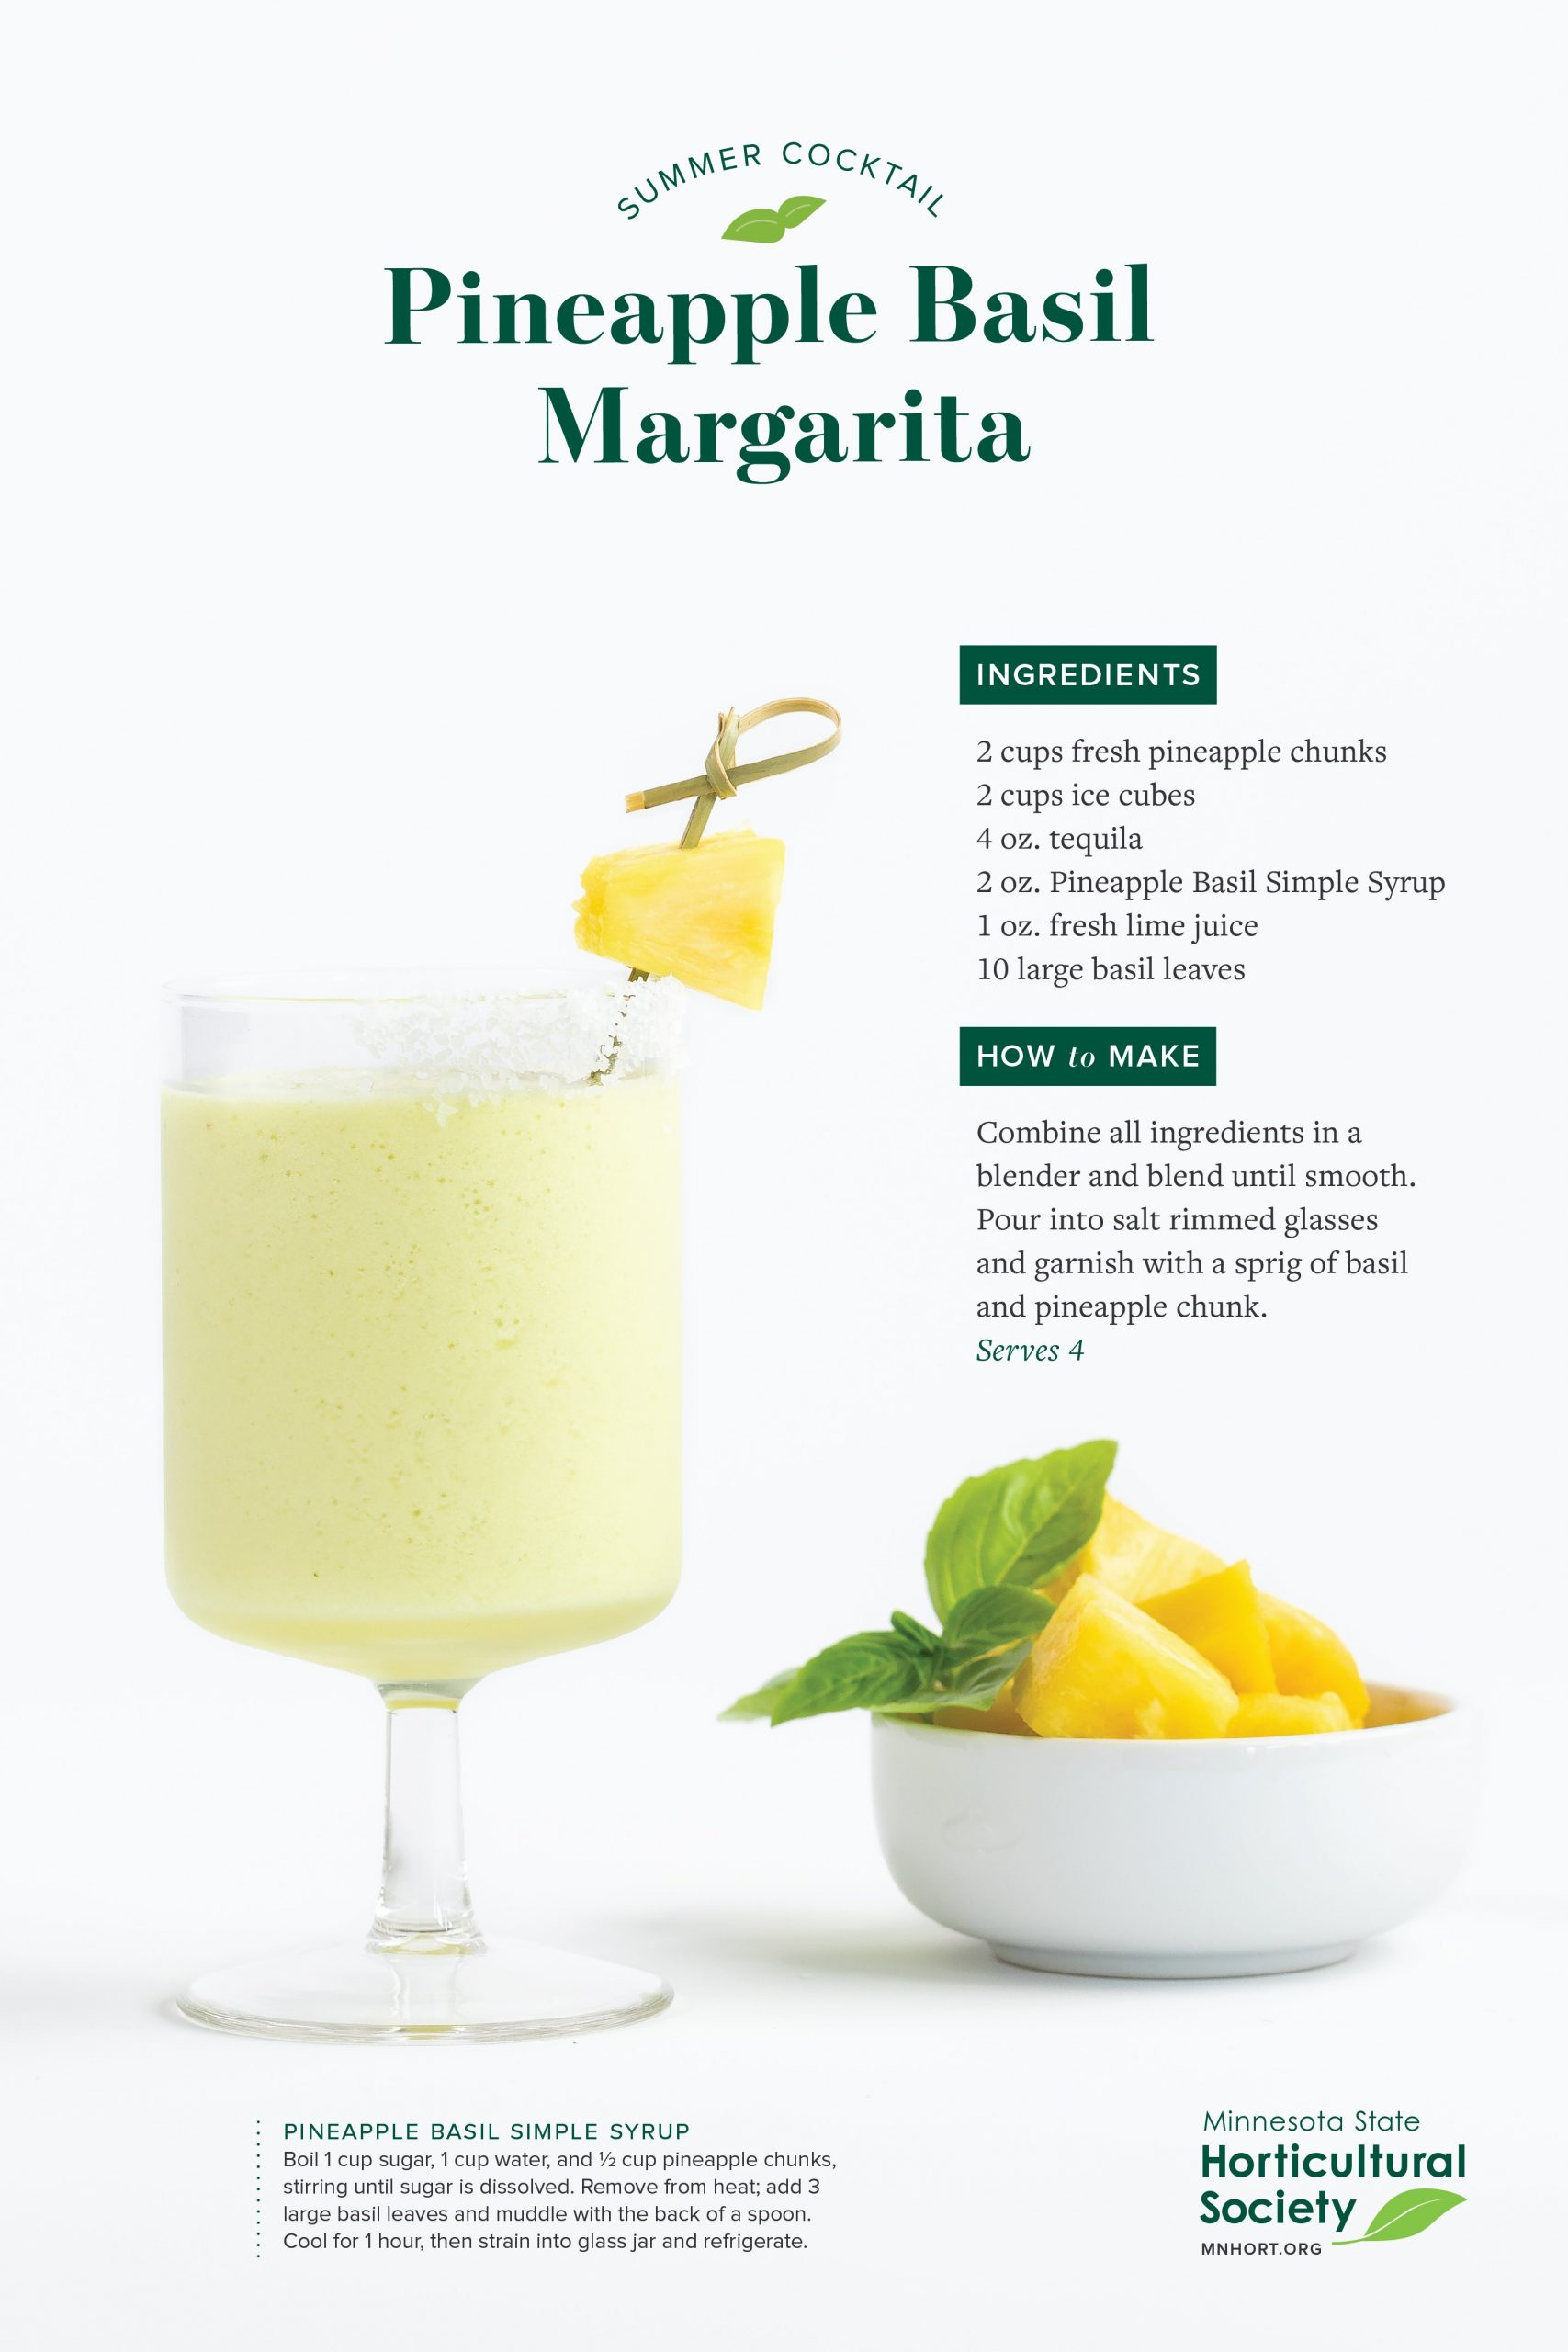 pineapple basil margarita